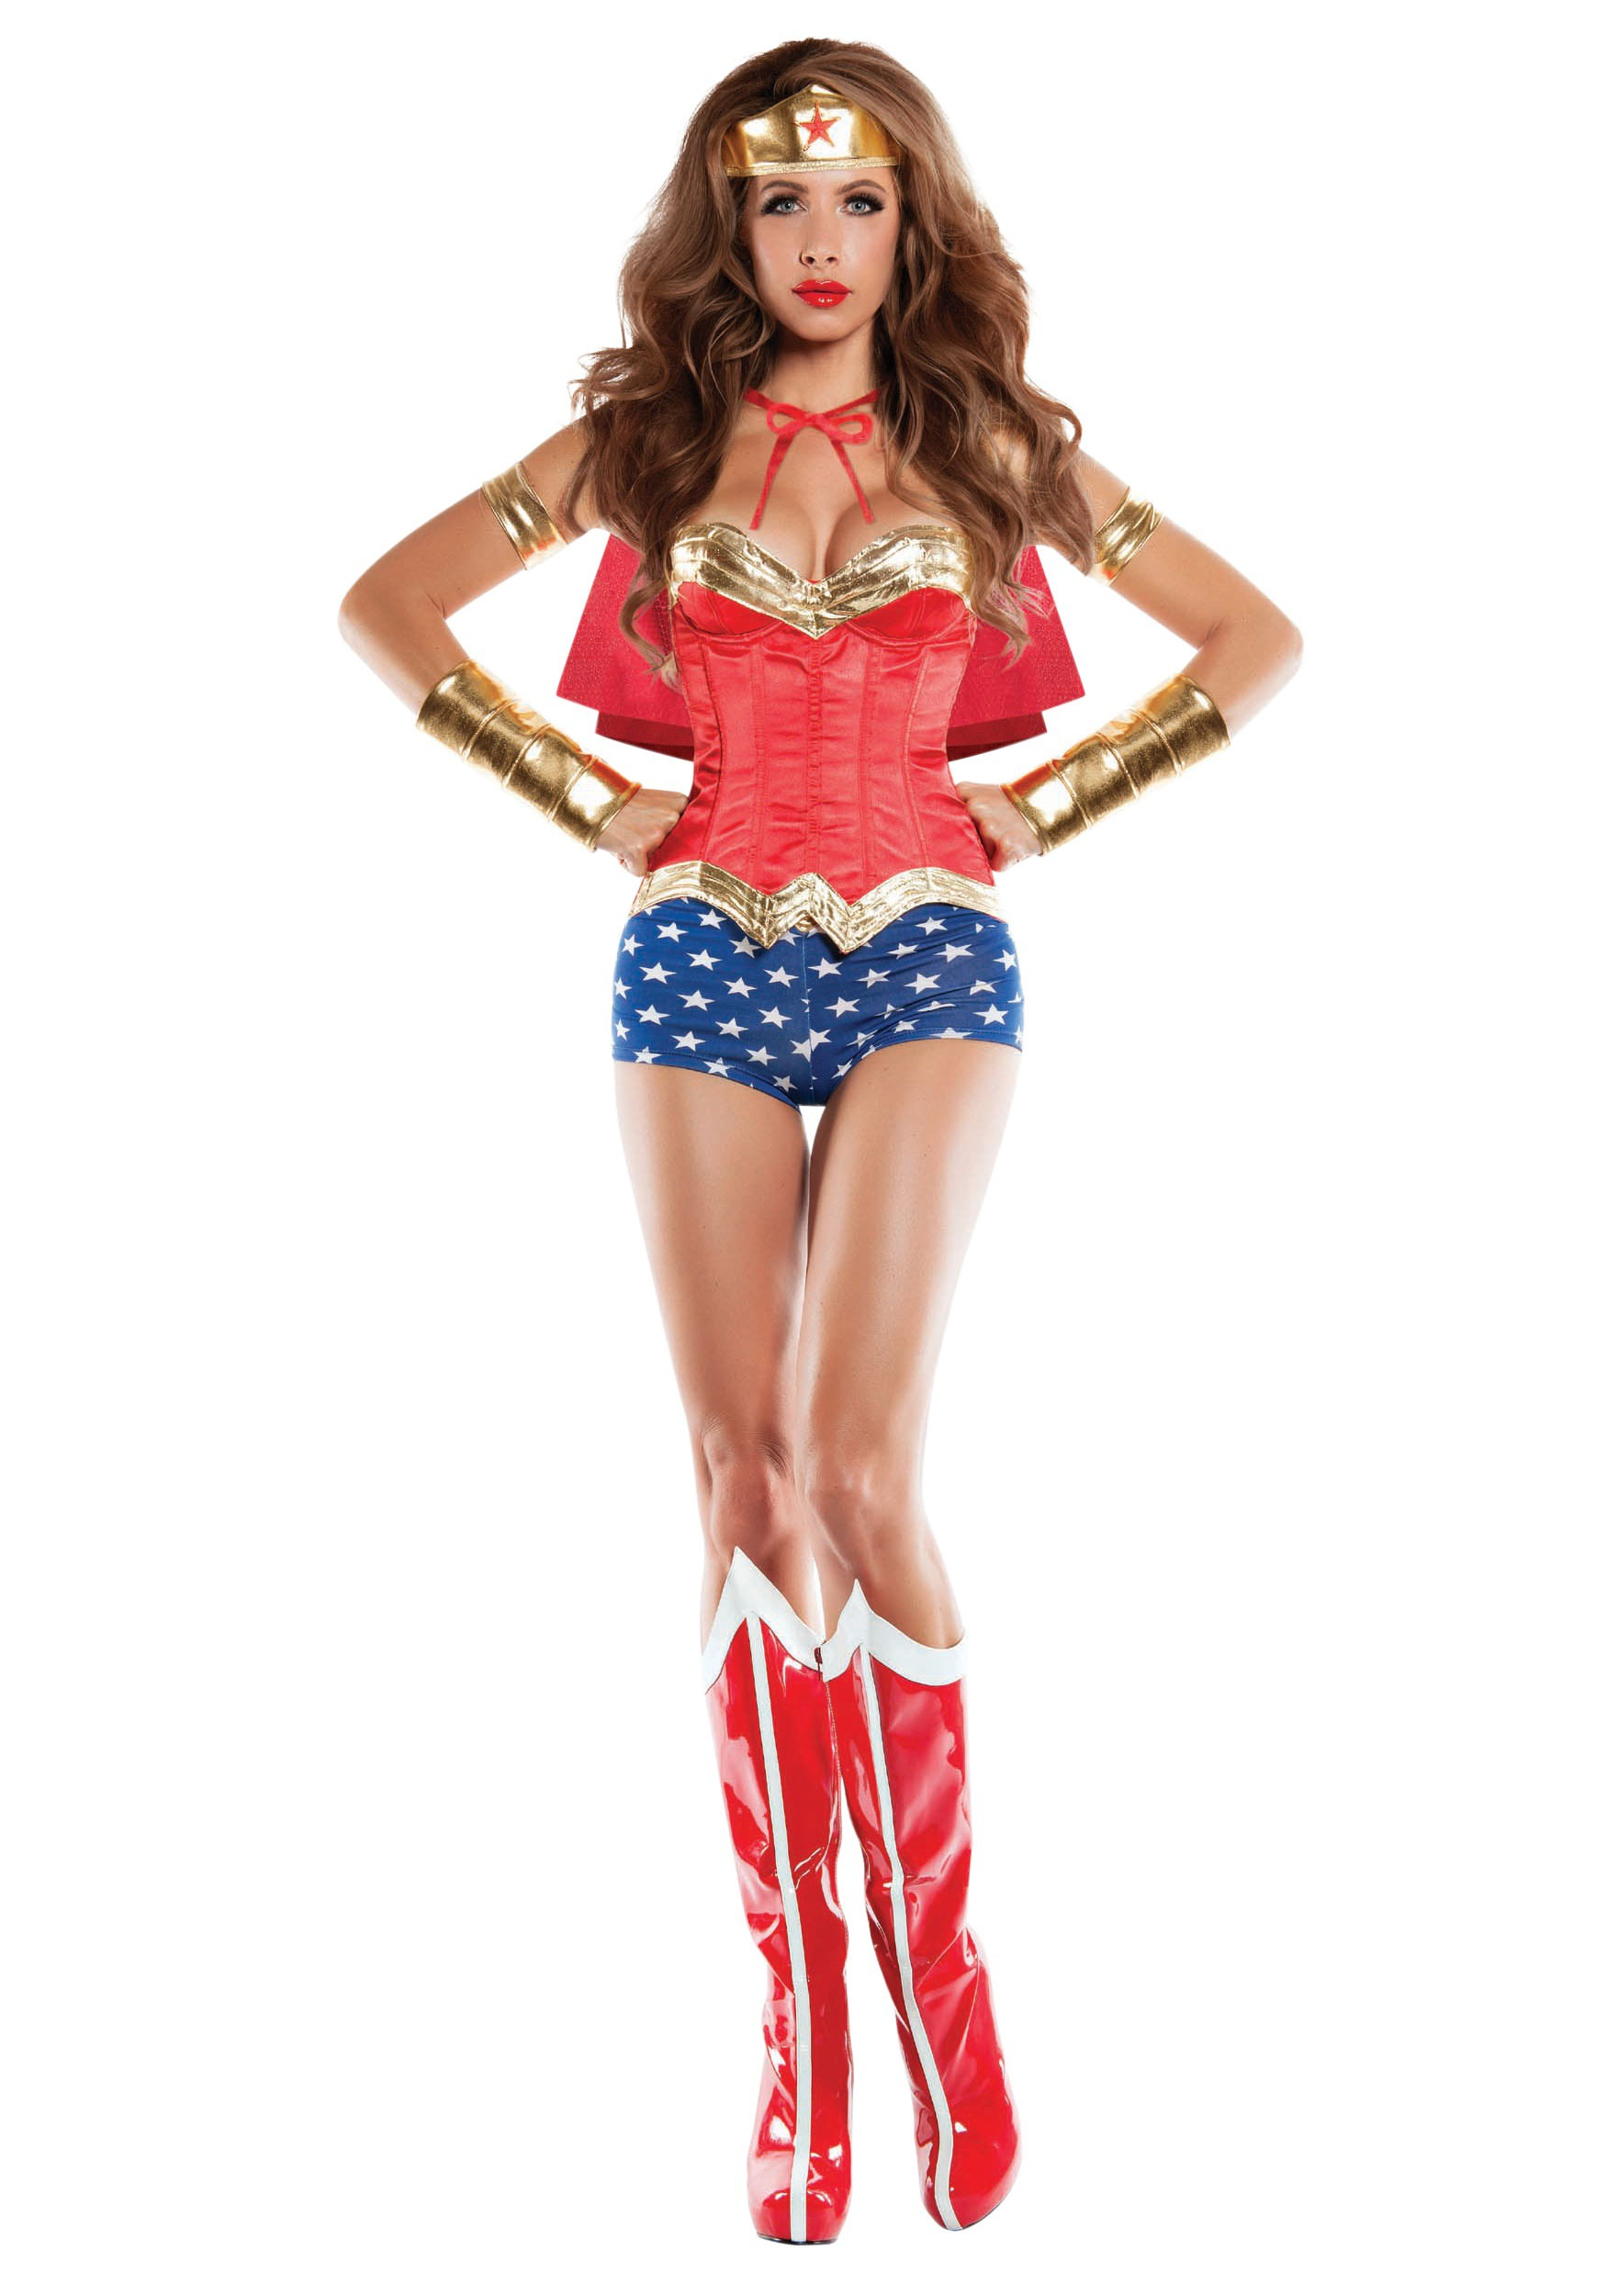 Women sexual dress up costumes